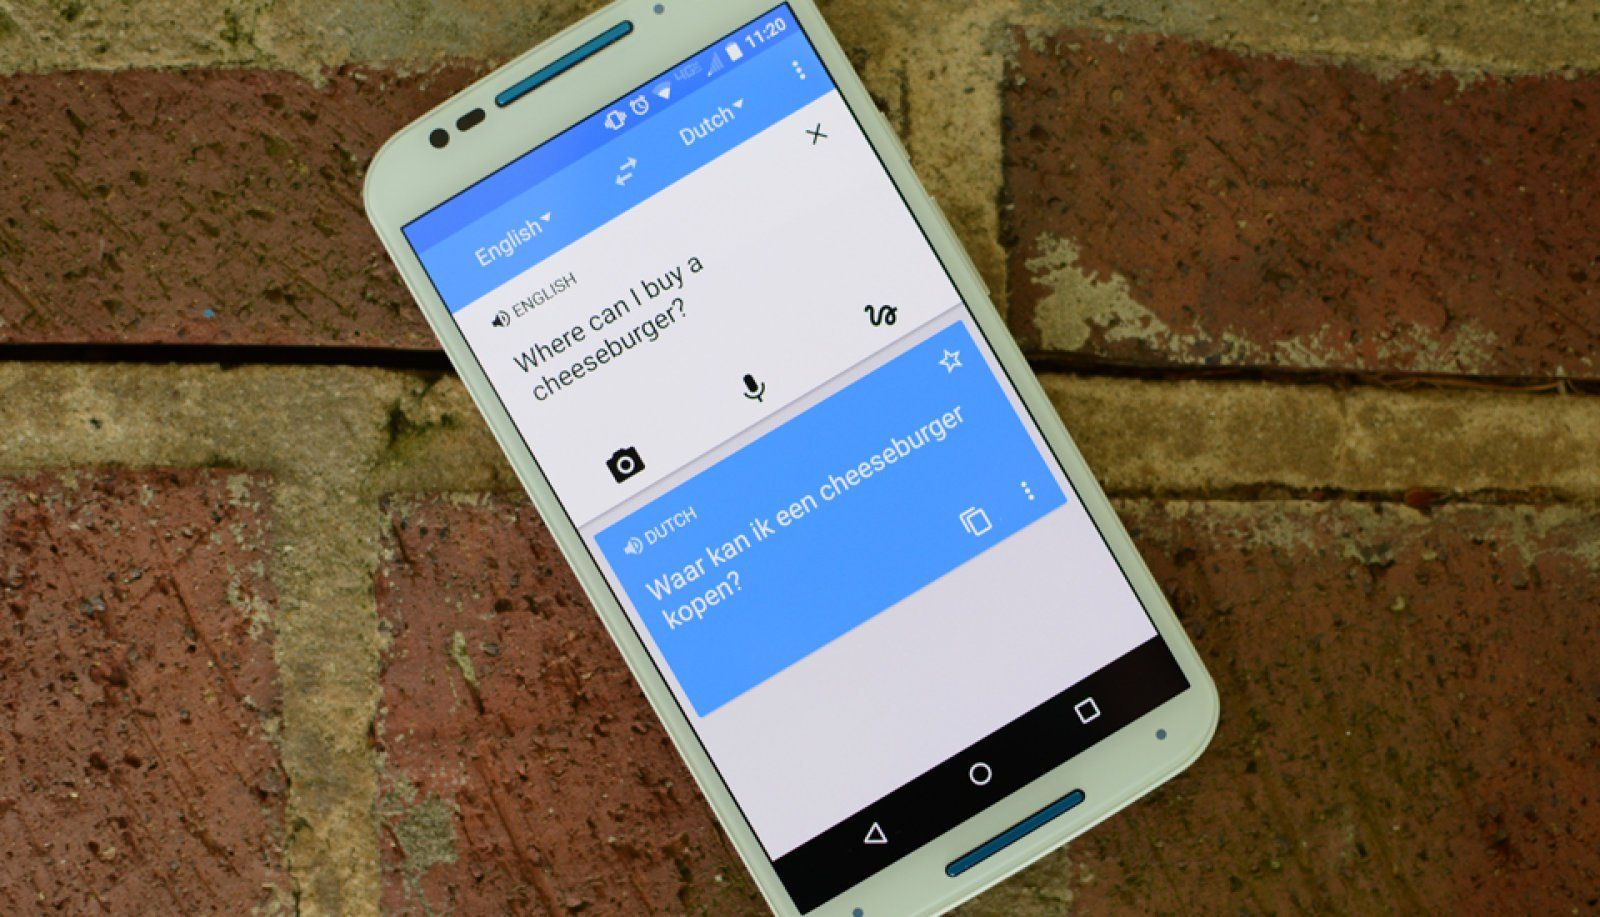 Google expands mission to make automated translations suck less - https://www.aivanet.com/2016/11/google-expands-mission-to-make-automated-translations-suck-less/